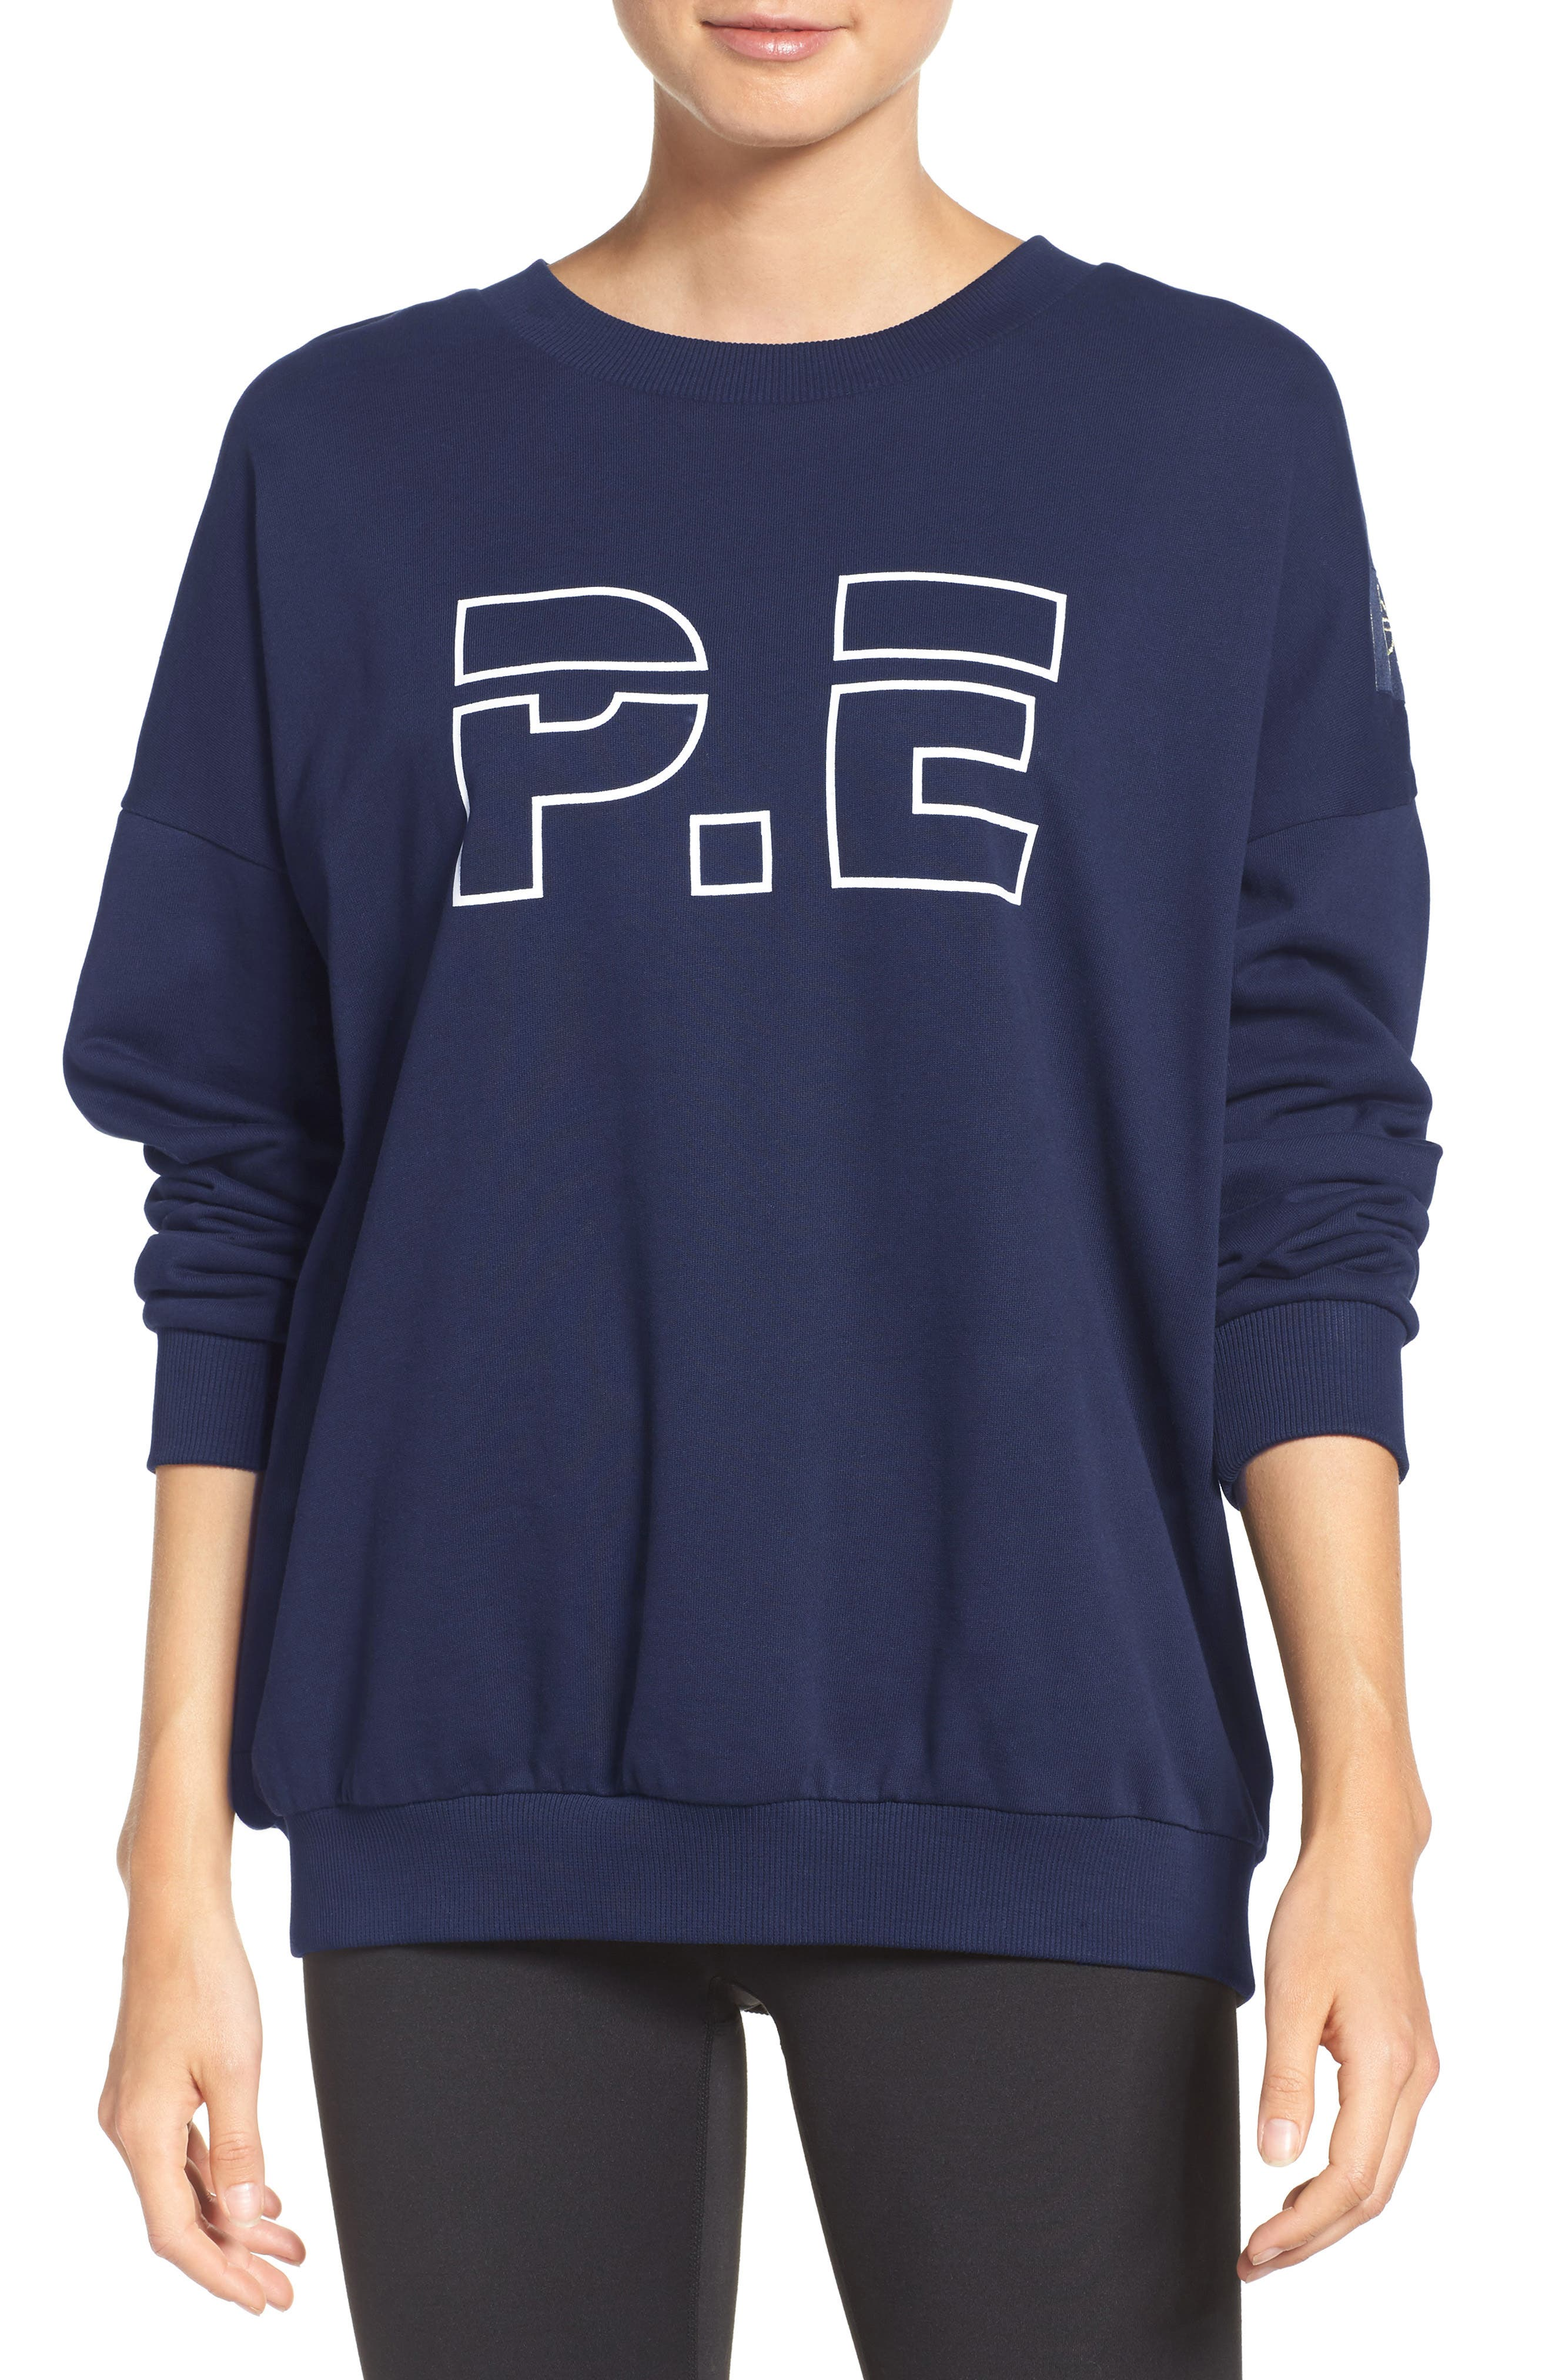 Alternate Image 1 Selected - P.E. Nation The Heads Up Sweatshirt